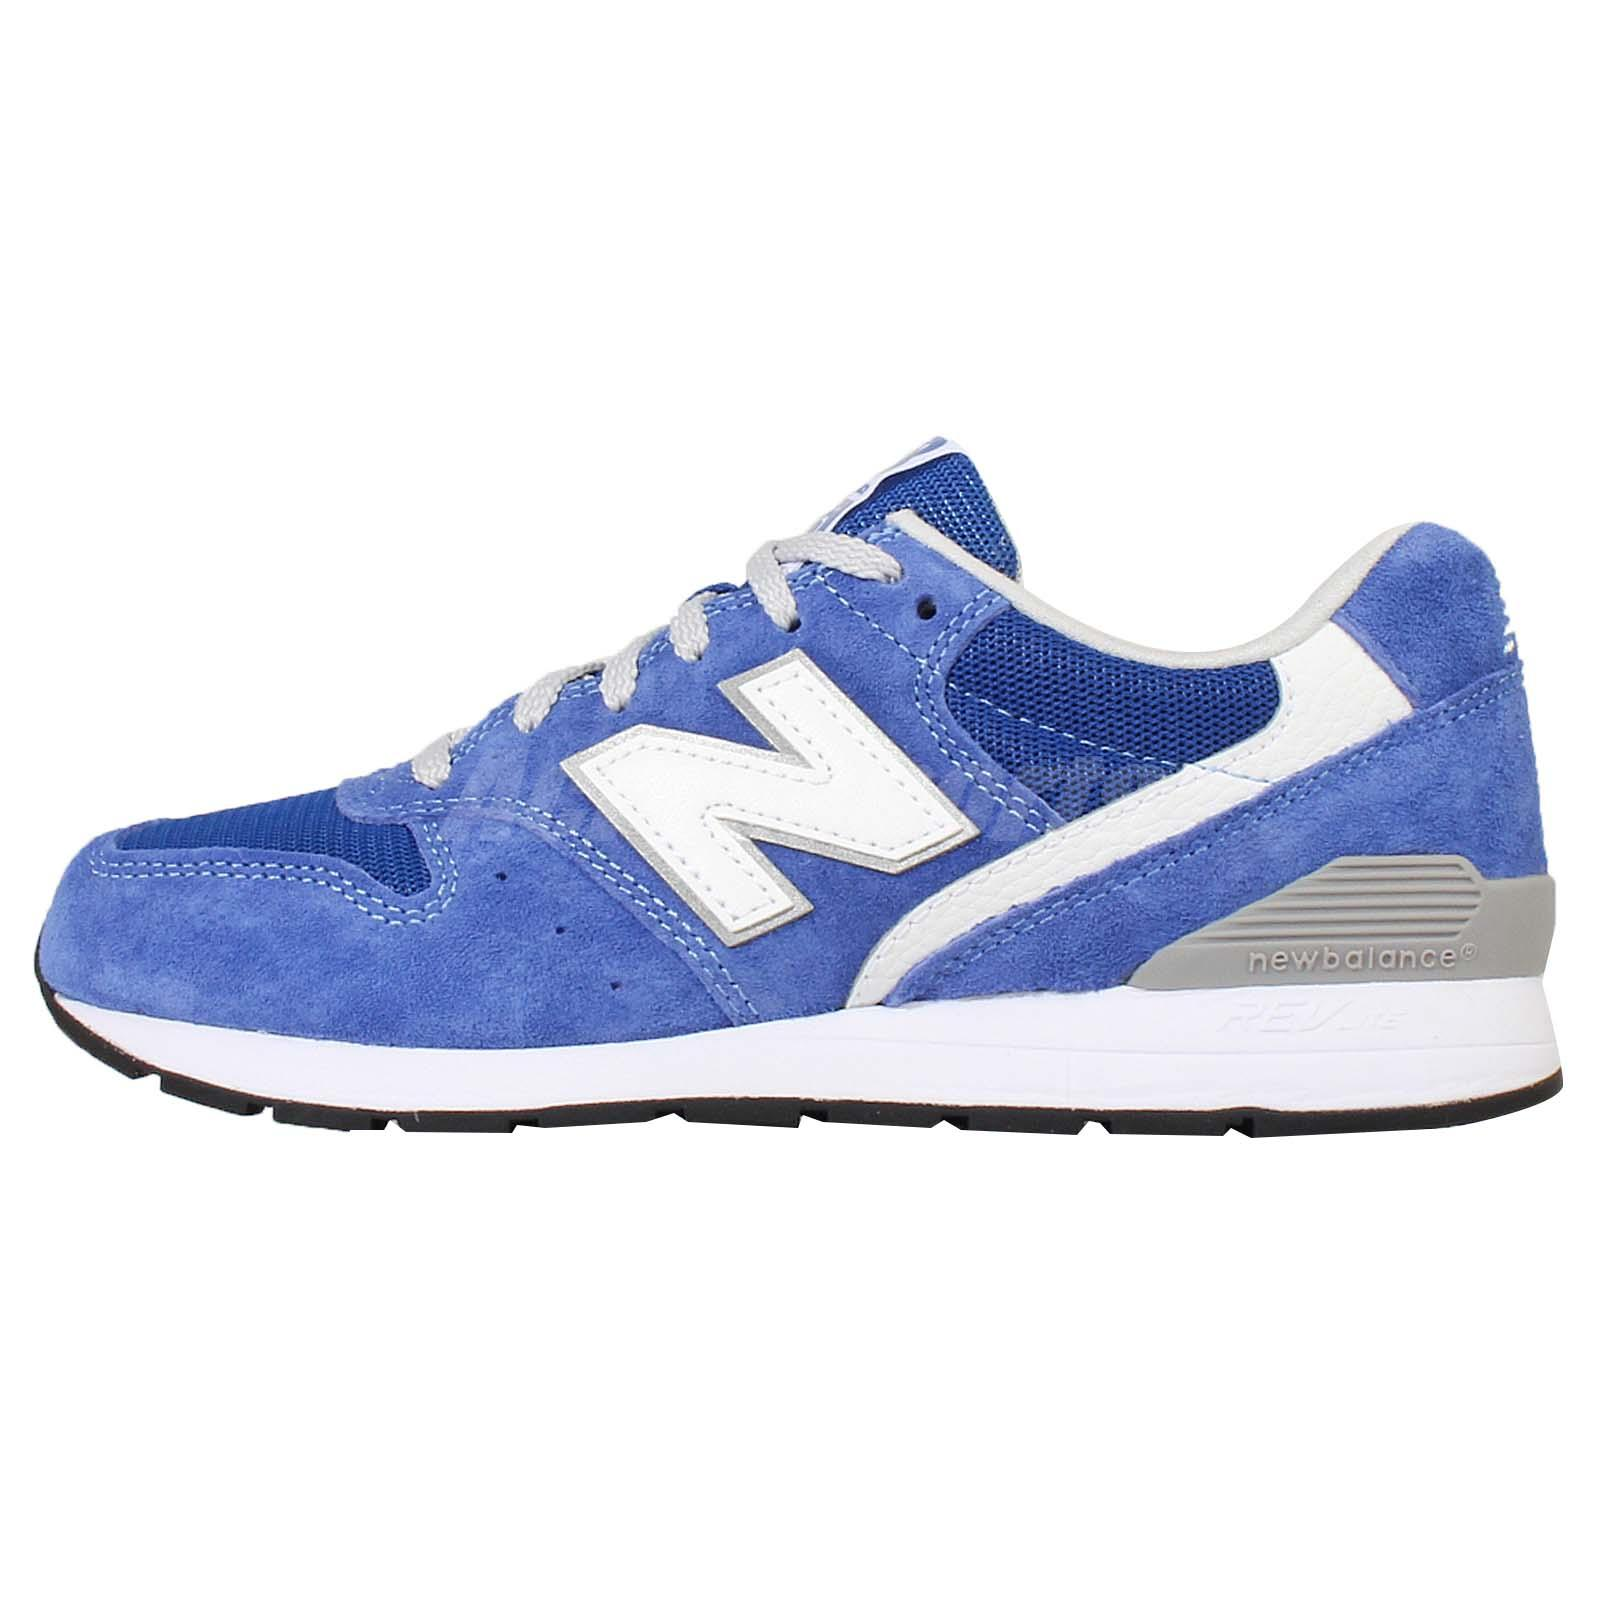 New Balance MRL996KC D Blue White Suede Mens Running Shoes Sneakers MRL996KCD